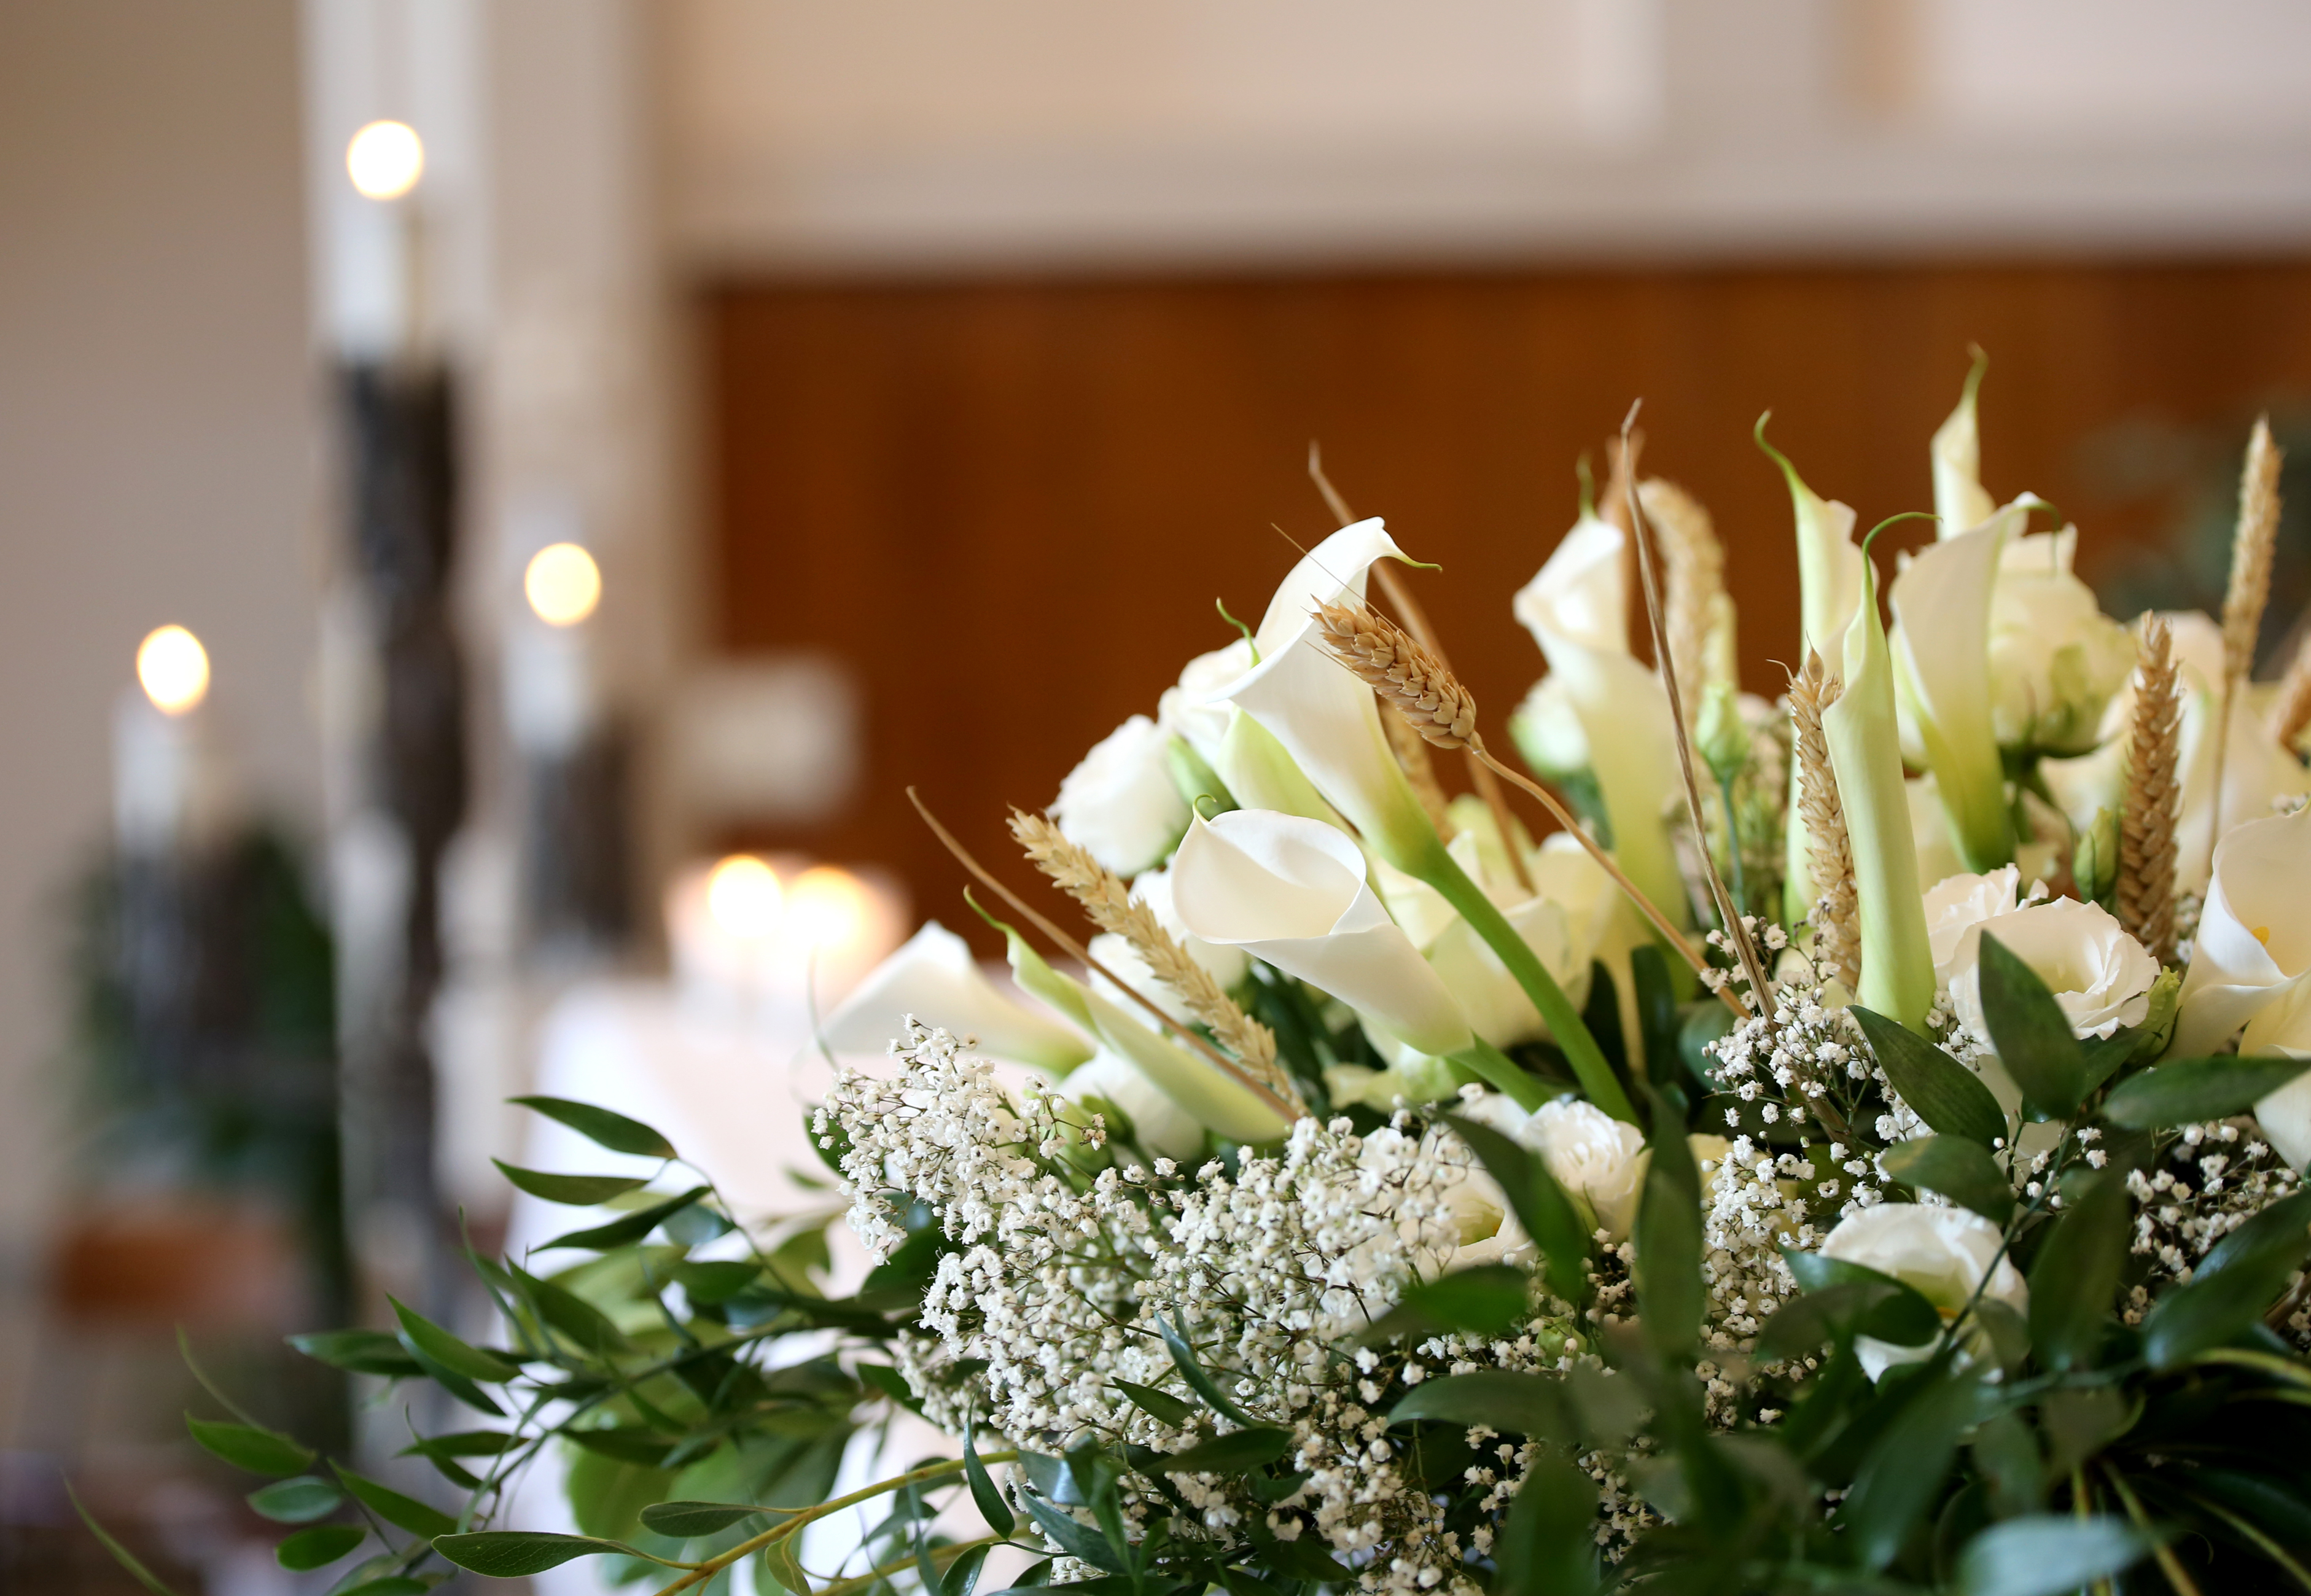 web2-flowers-church-shutterstock_1087019840.jpg